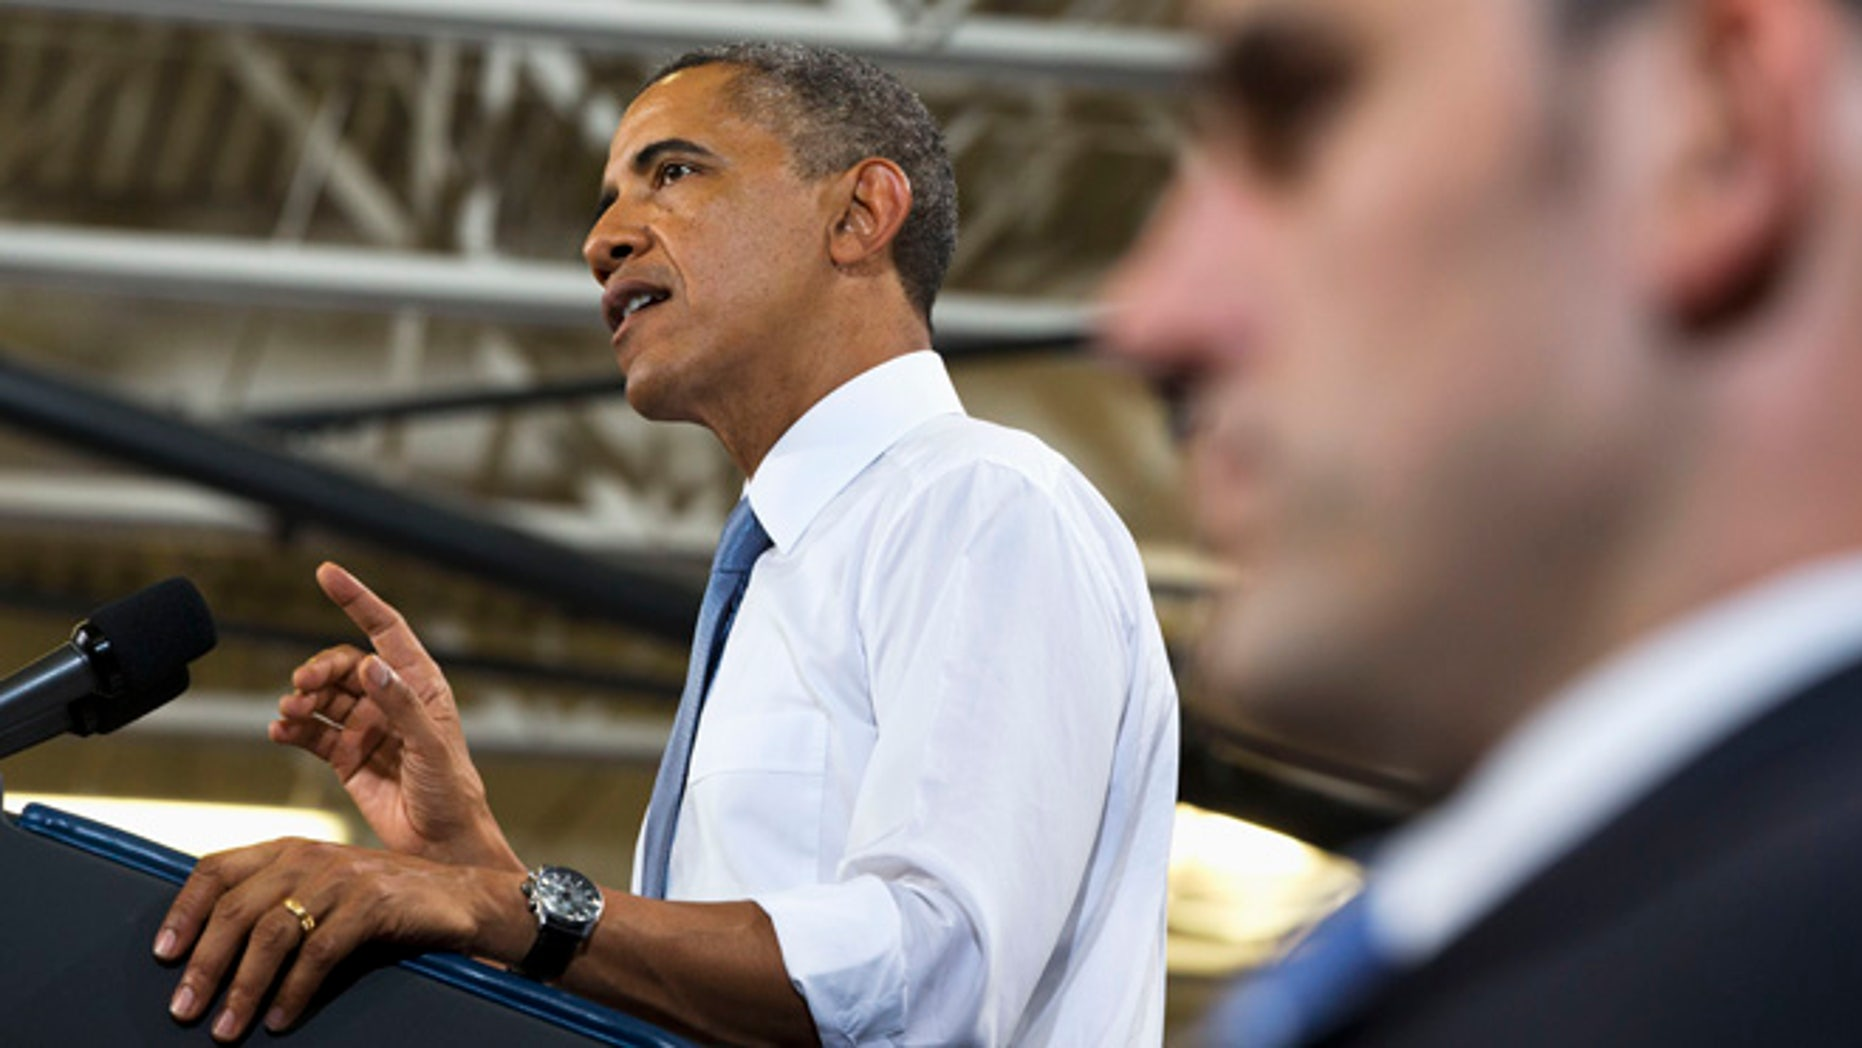 With a Secret Service agent in the foreground, President Obama gestures as he speaks about housing, Tuesday, Aug. 6, 2013, at Desert Vista High School in Phoenix.